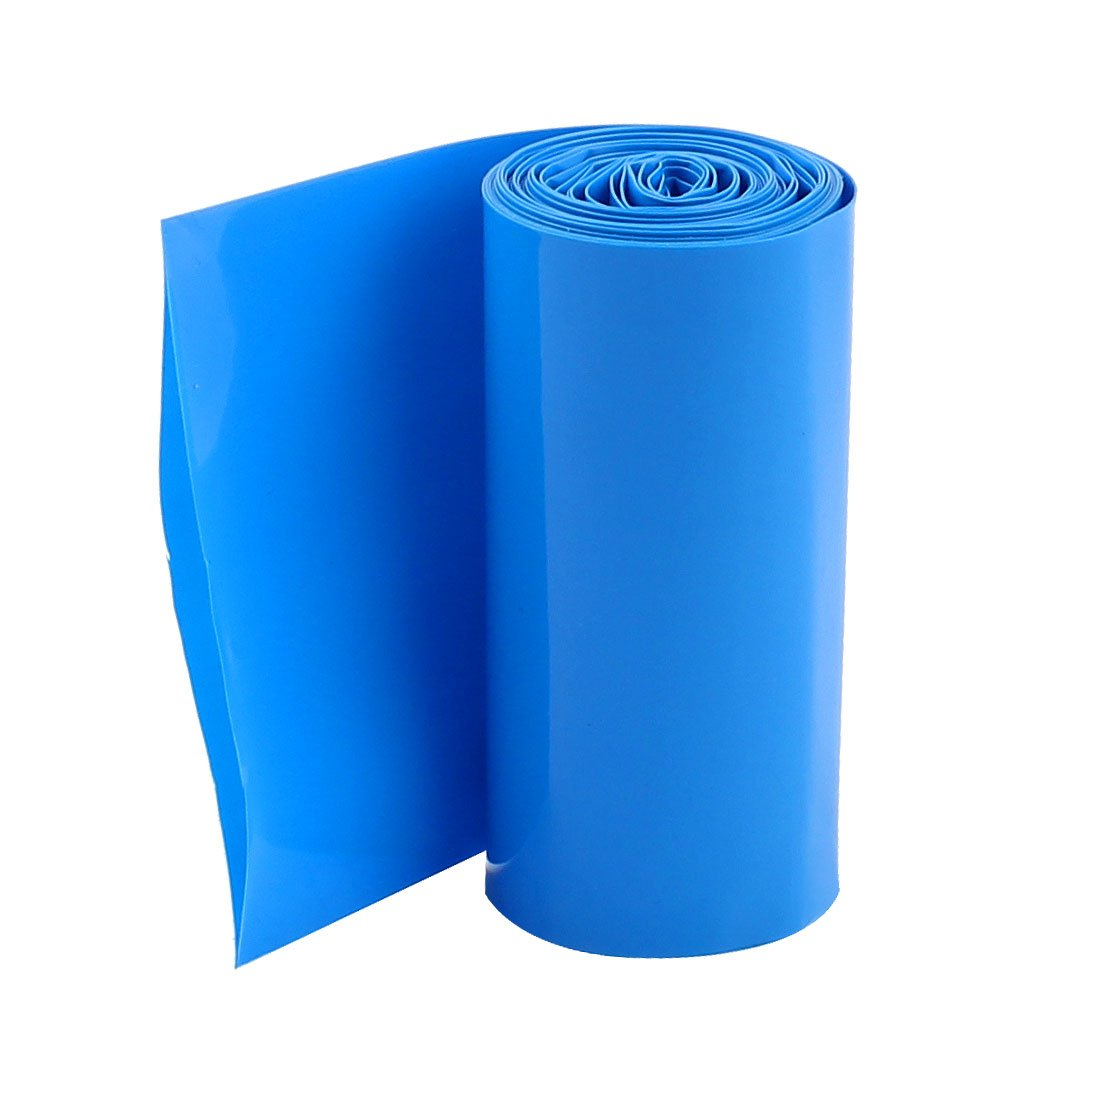 Uxcell PVC Heat Shrink Wrap for 4x18650 Battery Pack, 2 m, 70 mm Width, Blue a15012900ux0483